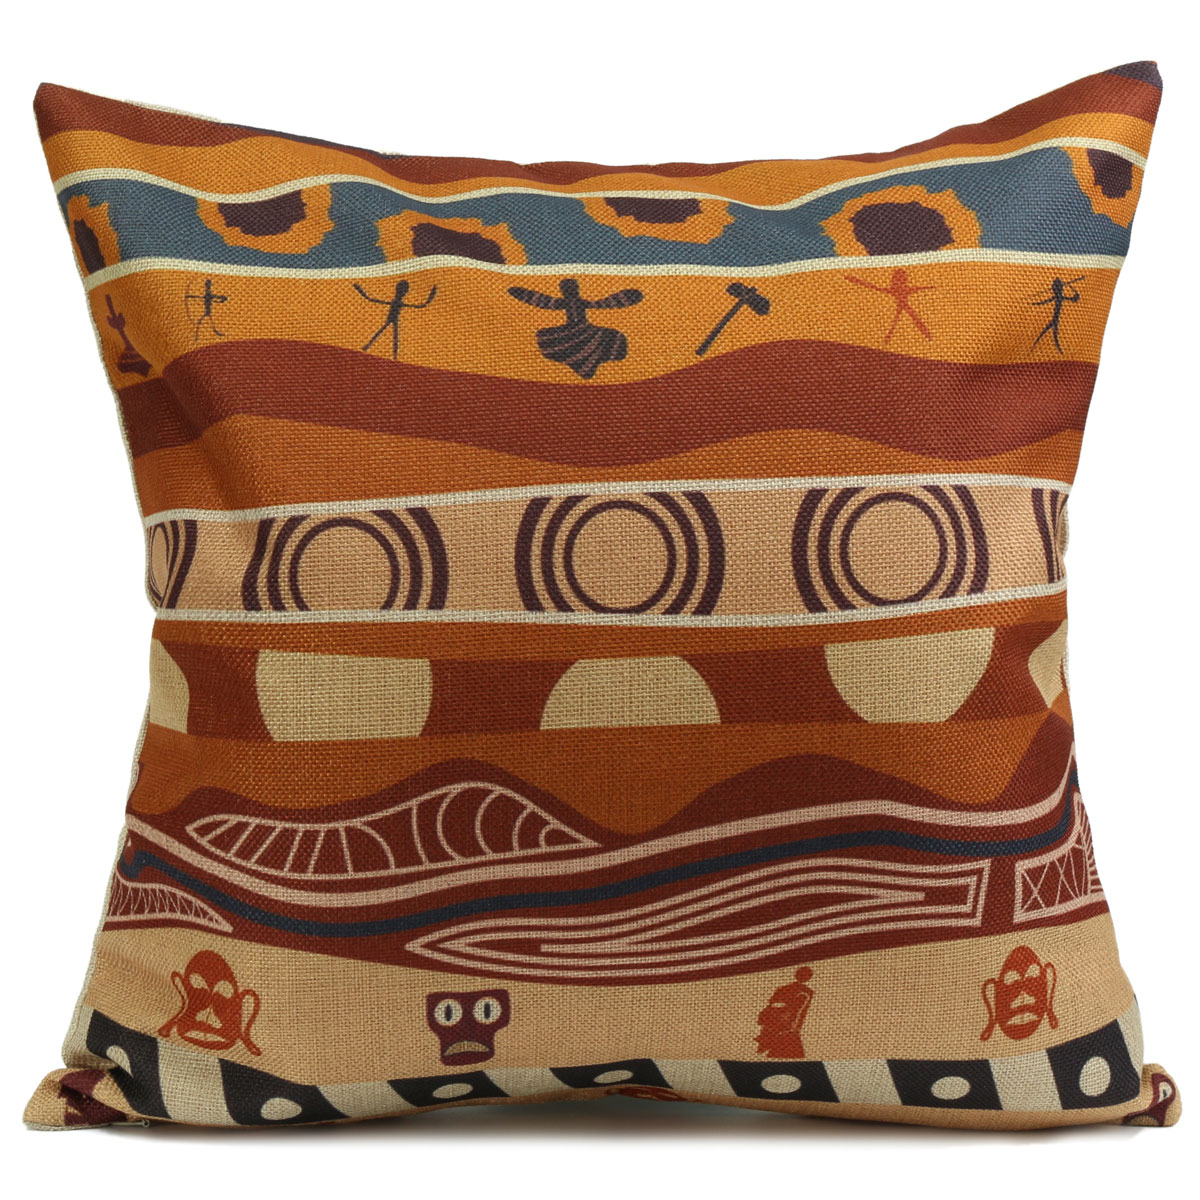 New Vintage African Styler Sofa Throw Pillow Case Cushion Cover Home Decor 17""